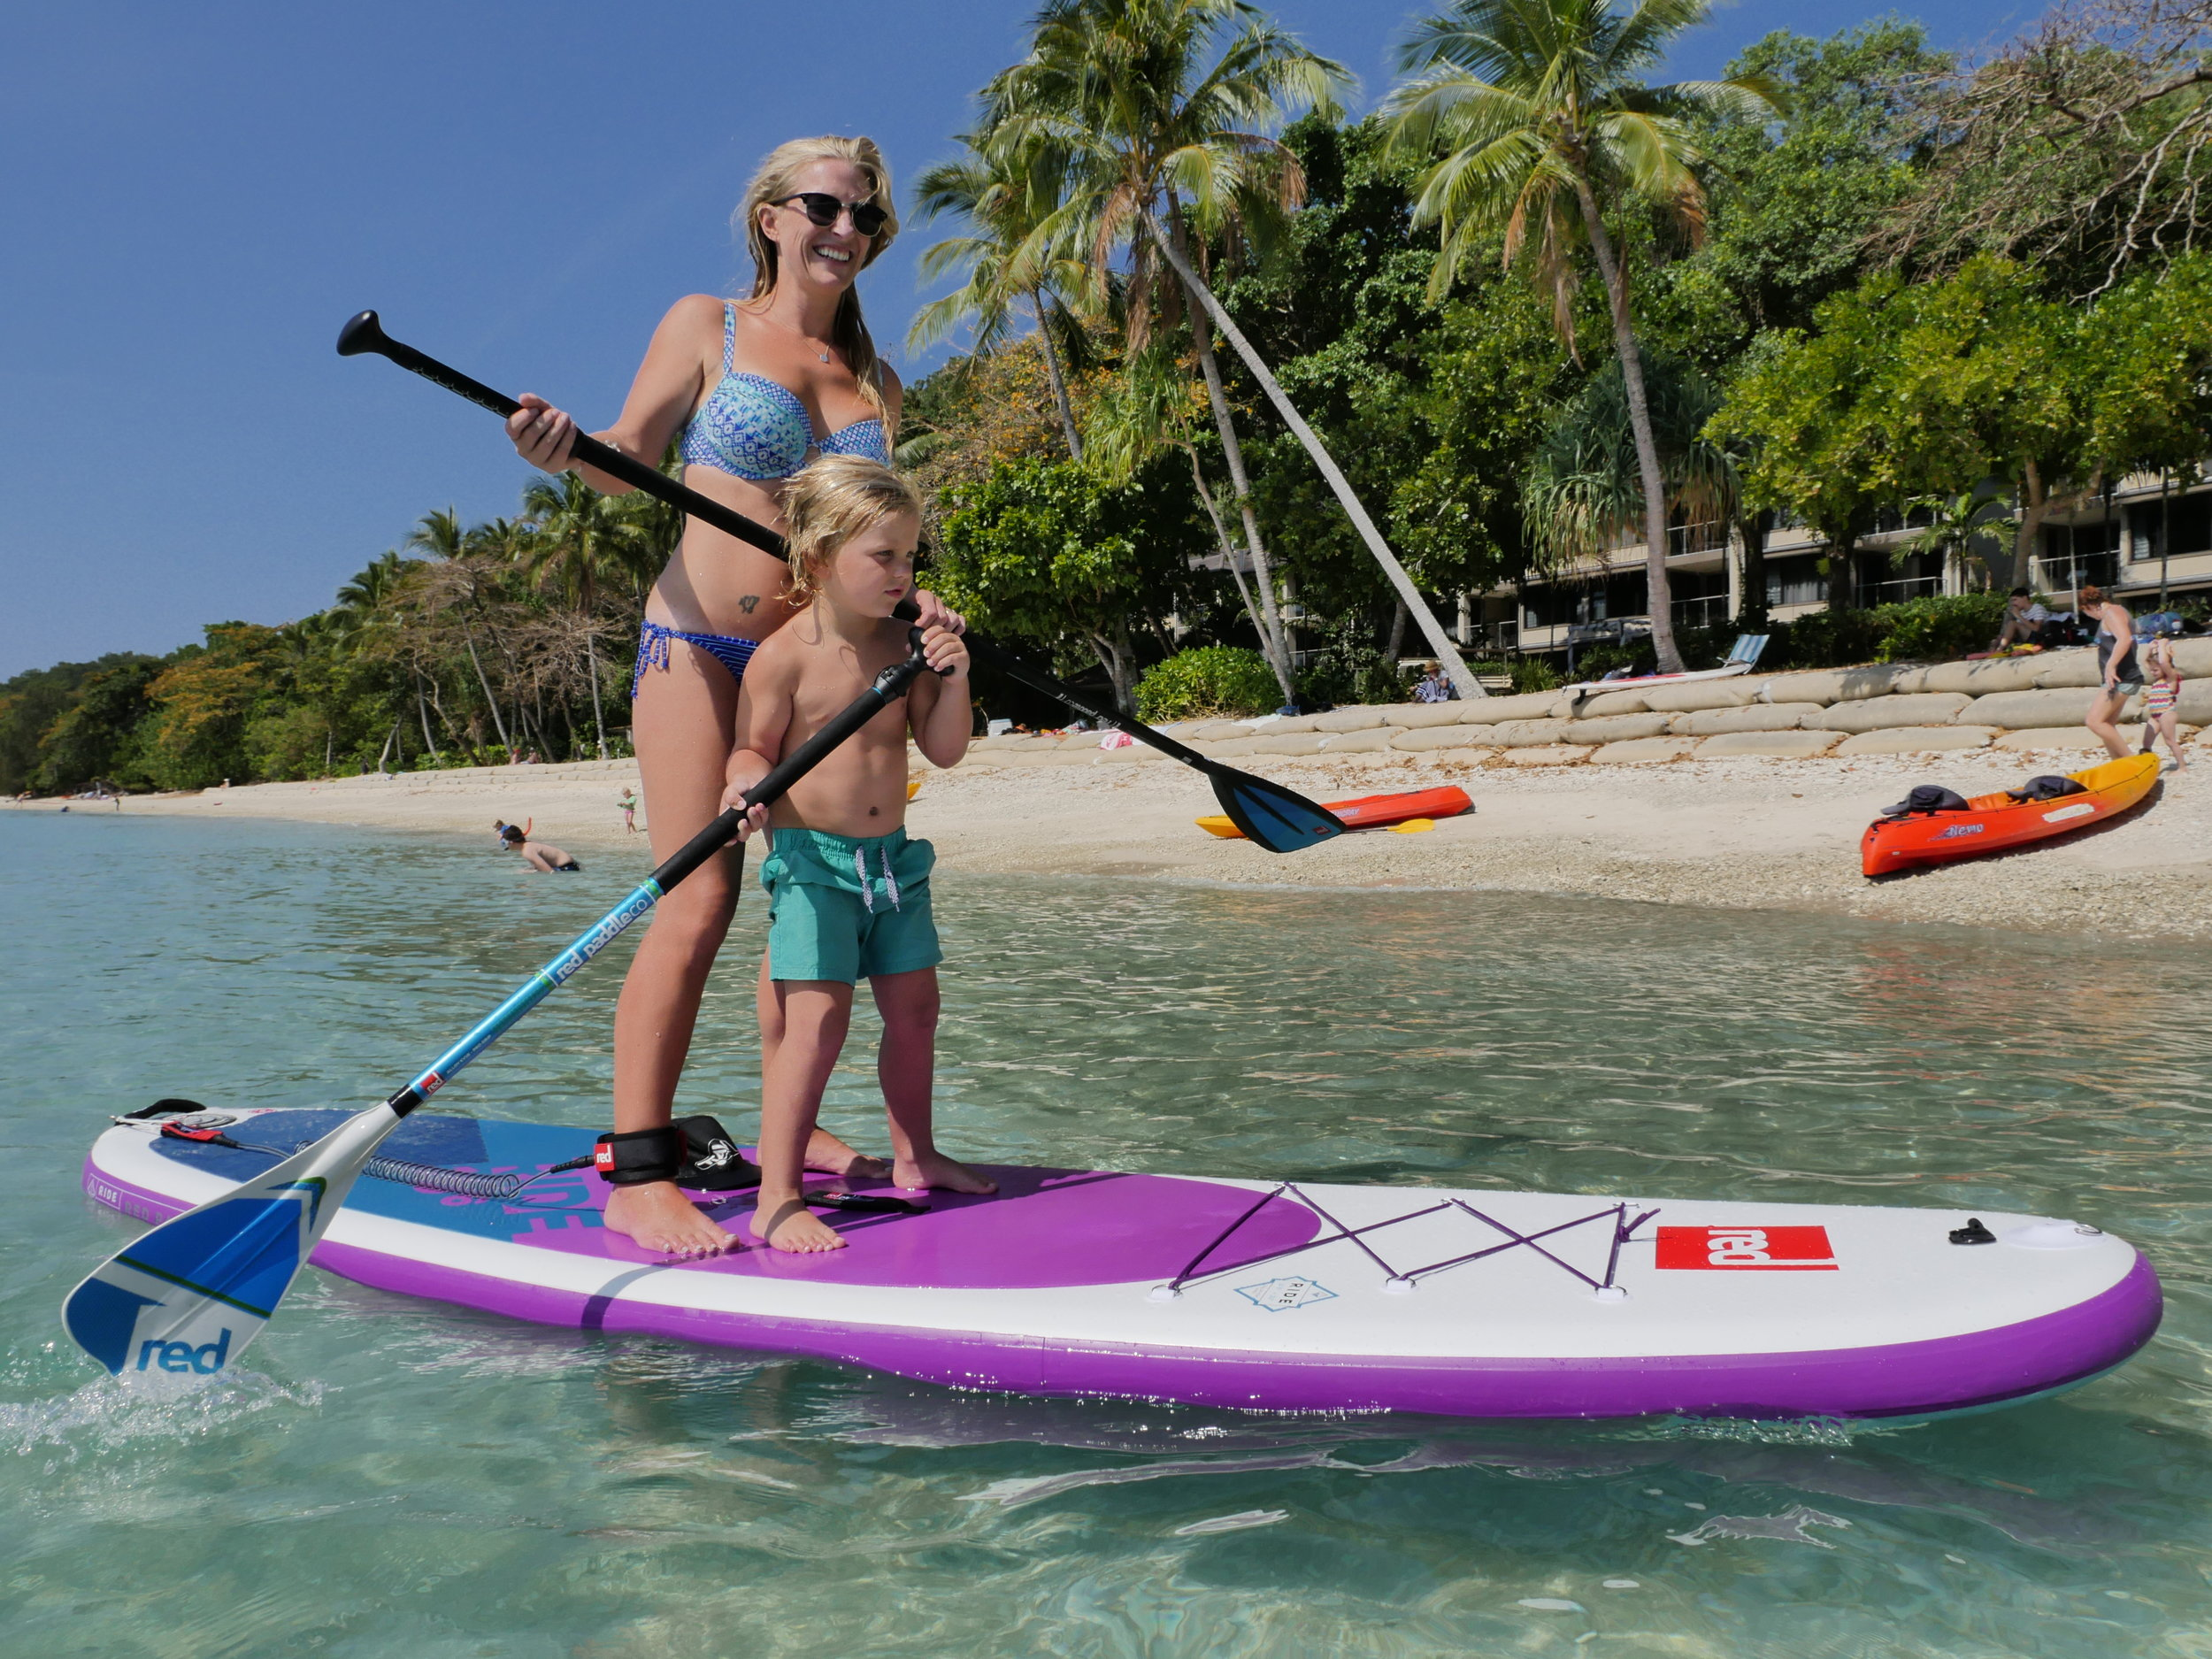 We are RedPaddleCo. Ambassadors - The worlds best inflatable Stand Up Paddleboards!